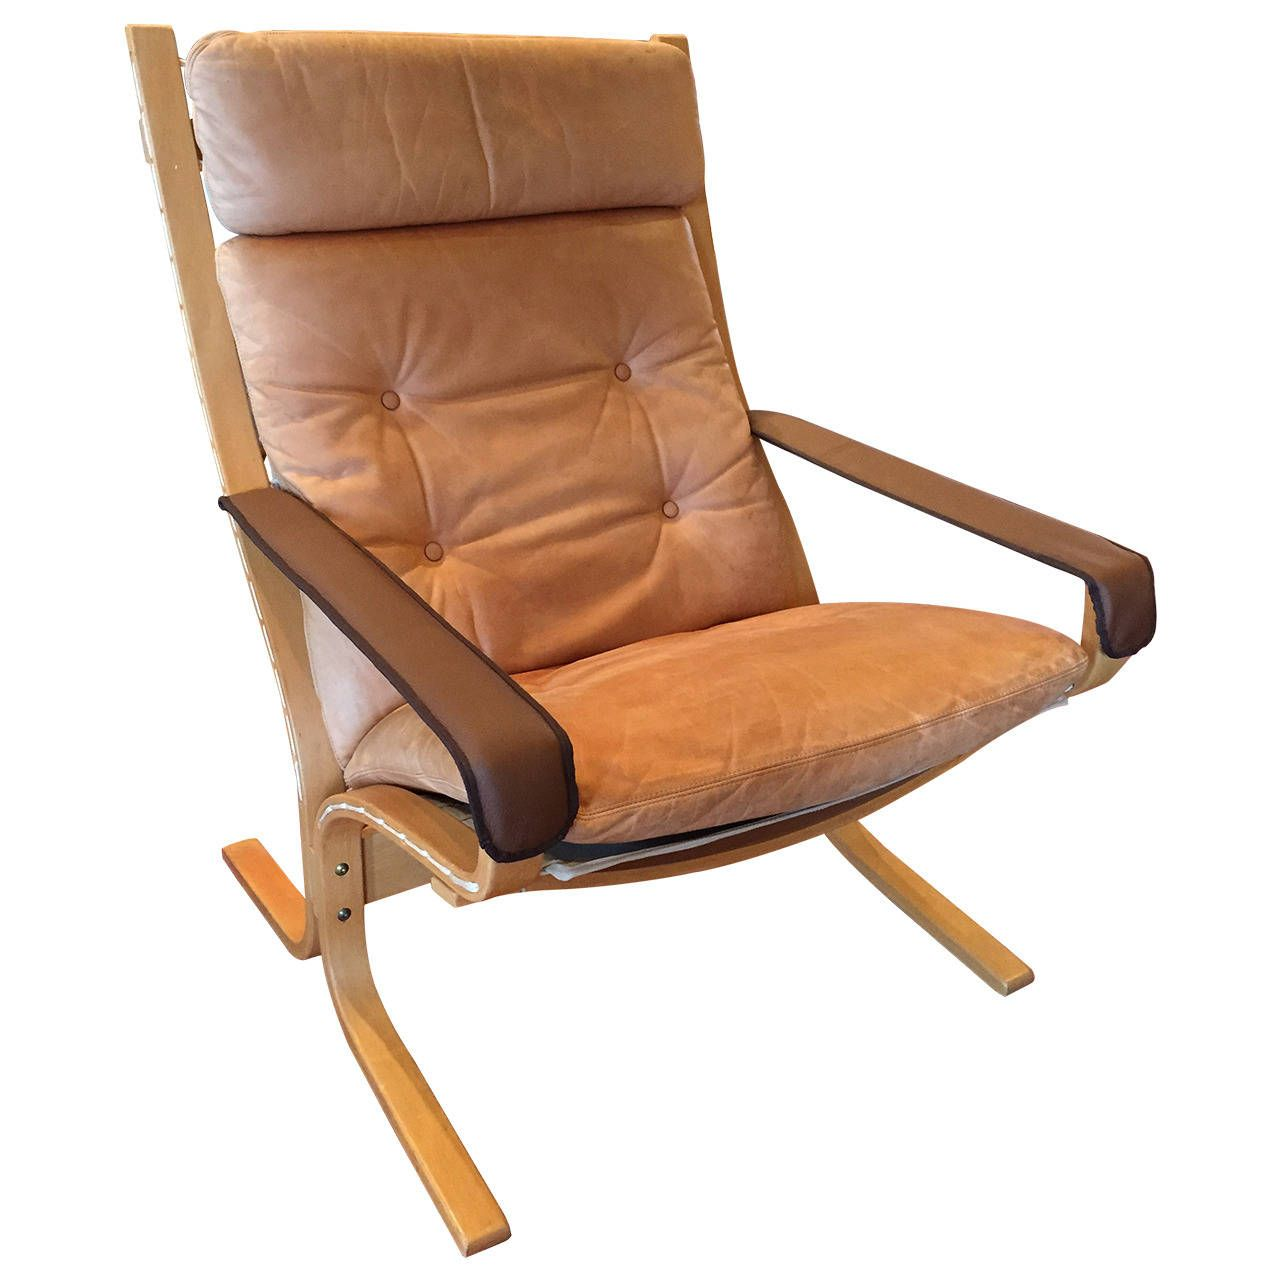 Antique lounge chairs - Ingmar Relling High Back Leather Siesta Chair